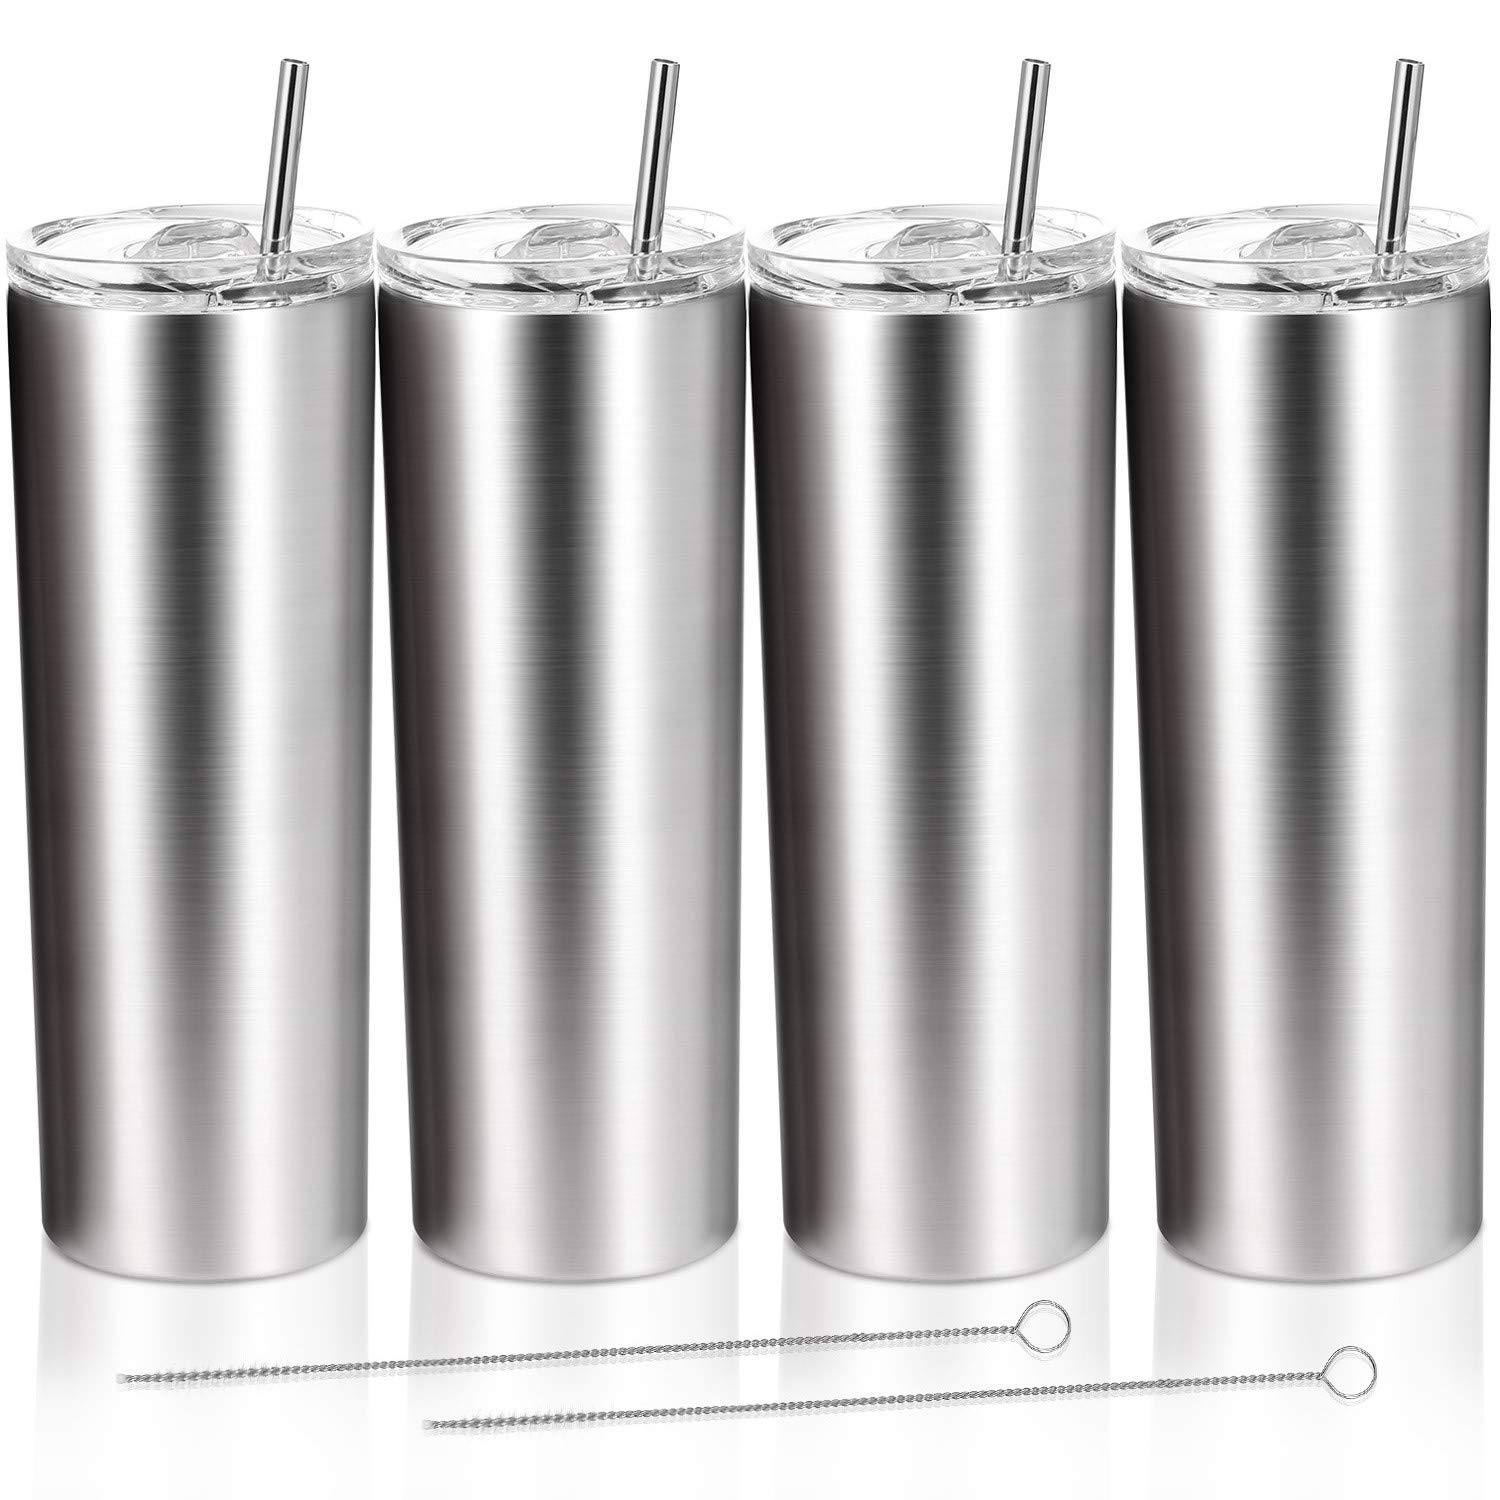 4 Pack Classic Tumbler Stainless Steel Double-Insulated Water Tumbler Cup with Lid and Straw Vacuum Travel Mug Gift with Cleaning Brush (Stainless, 20 oz)